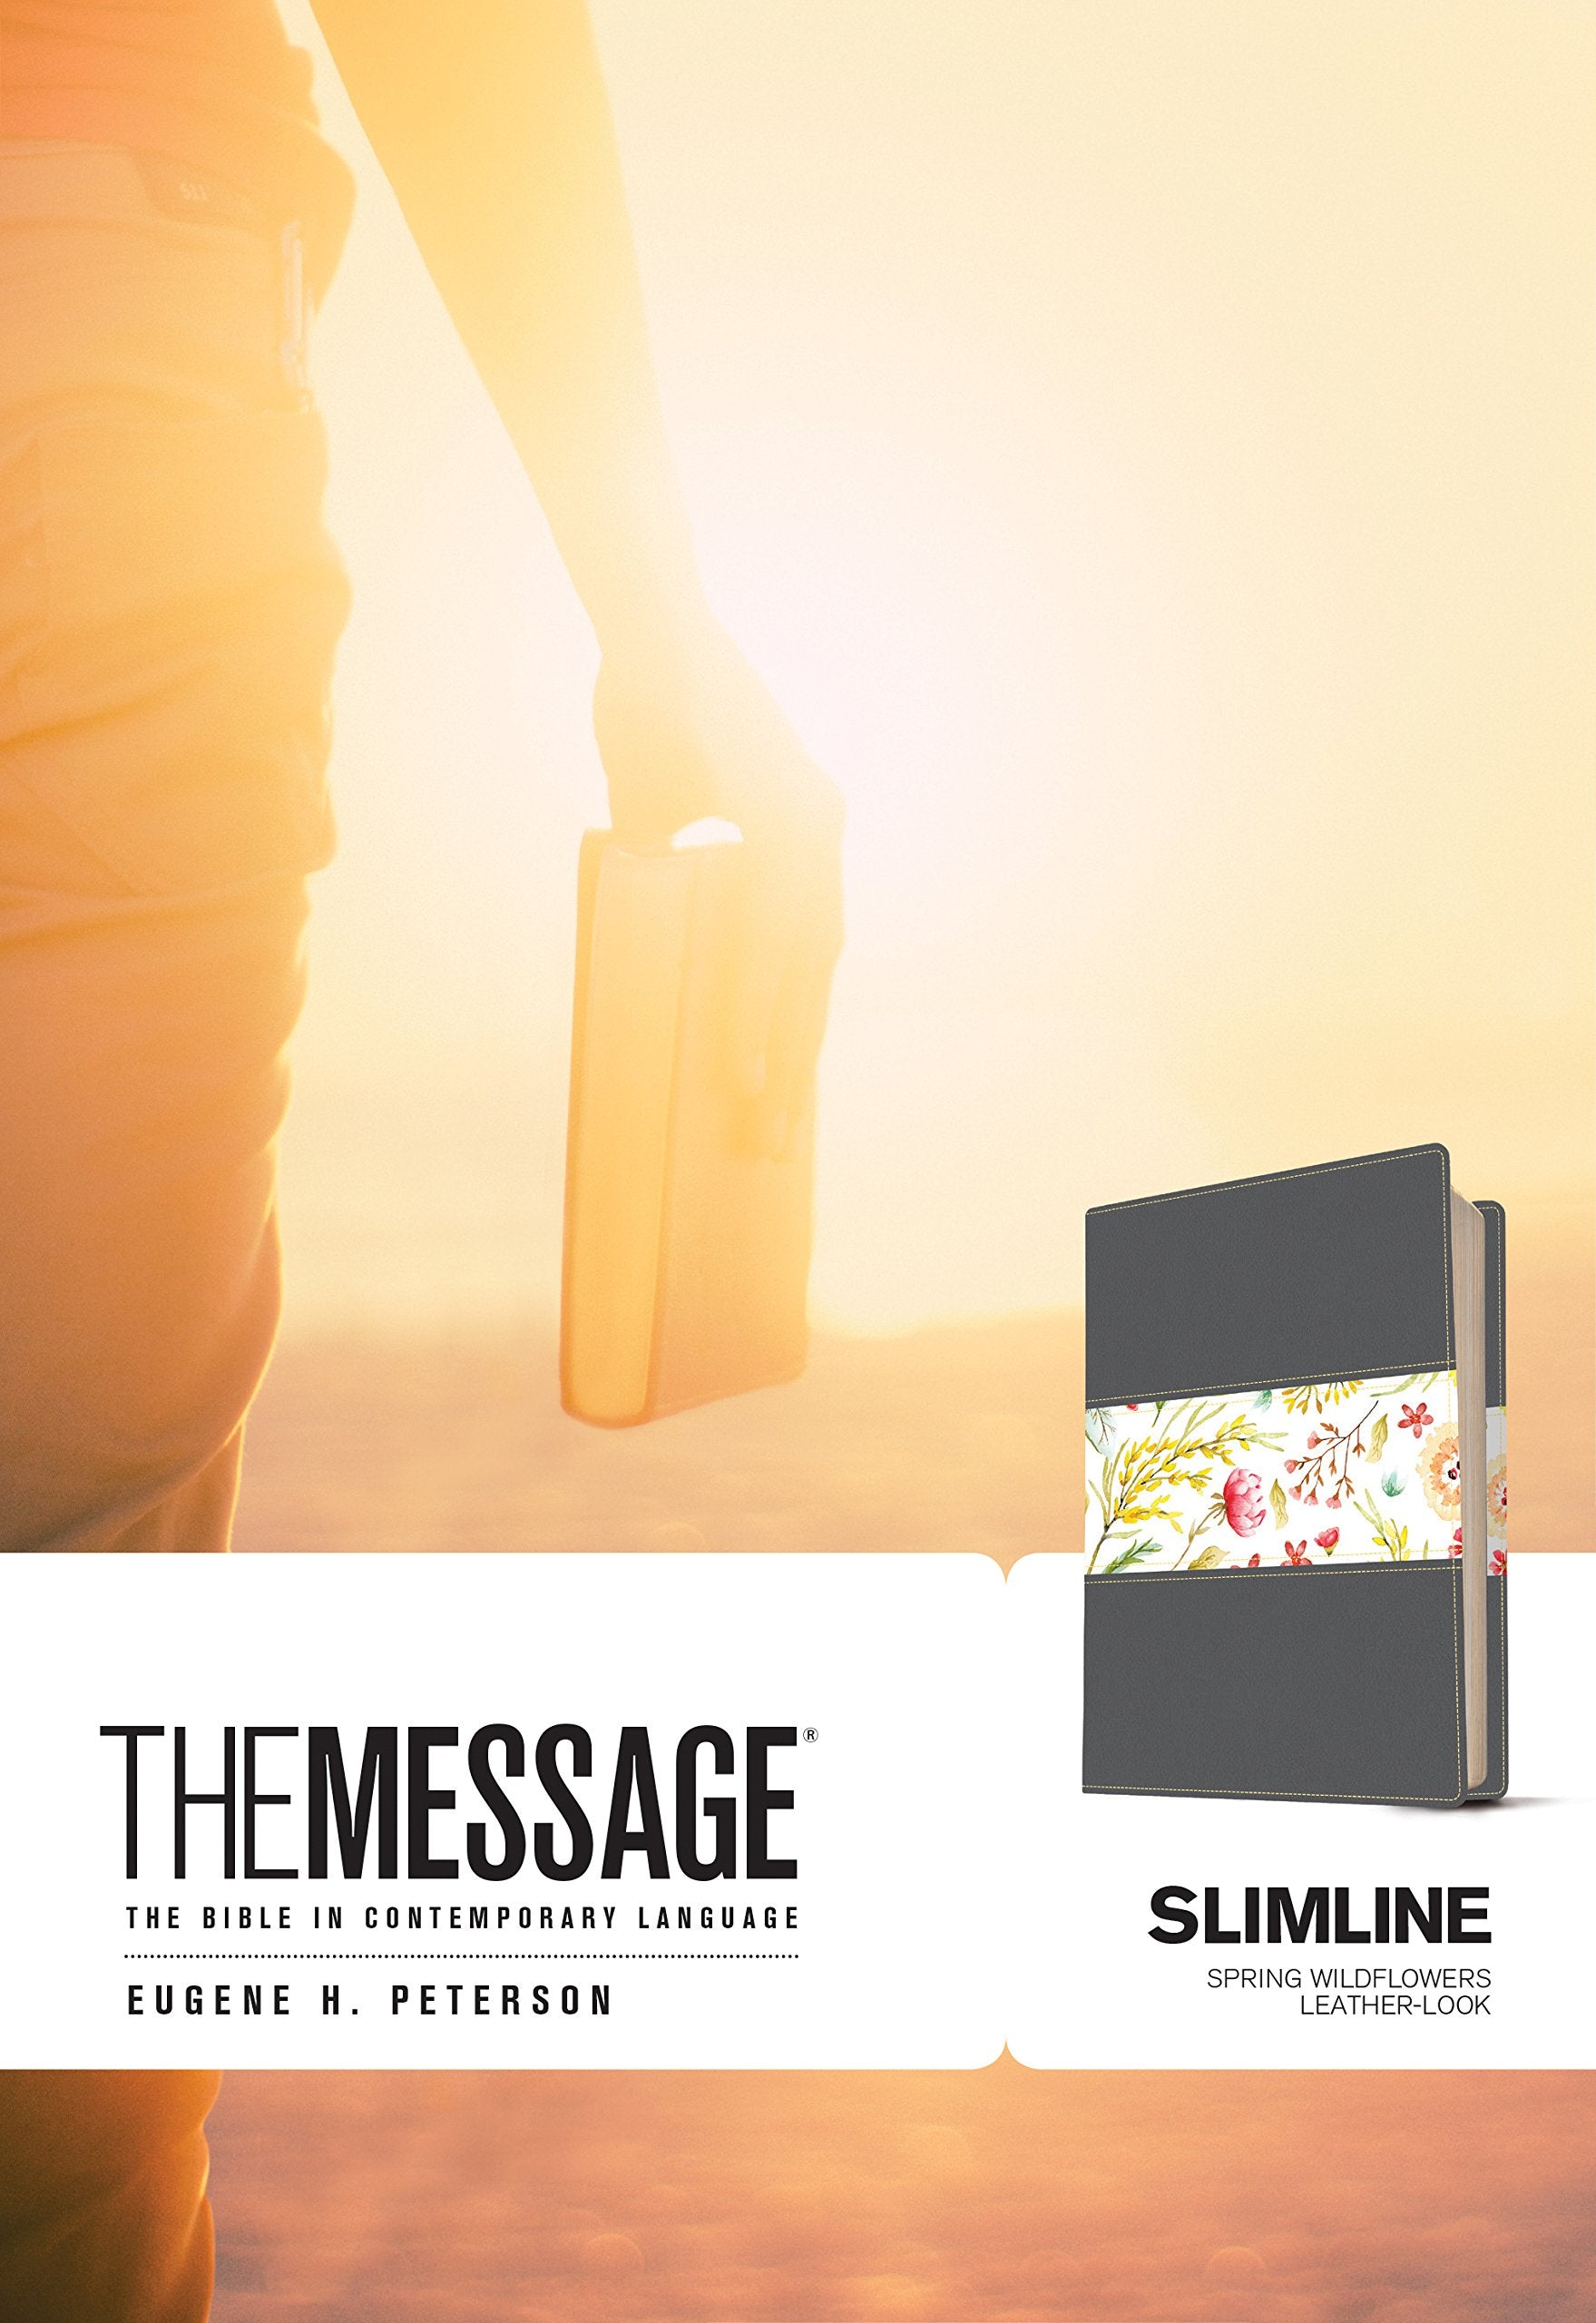 ROCKONLINE | New Creation Church | NCC | Joseph Prince | ROCK Bookshop | ROCK Bookstore | Star Vista | Bibles | Eugene H. Peterson | The Message Slimline, Leather-Look, Spring Wildflowers | Free delivery for Singapore Orders above $50.